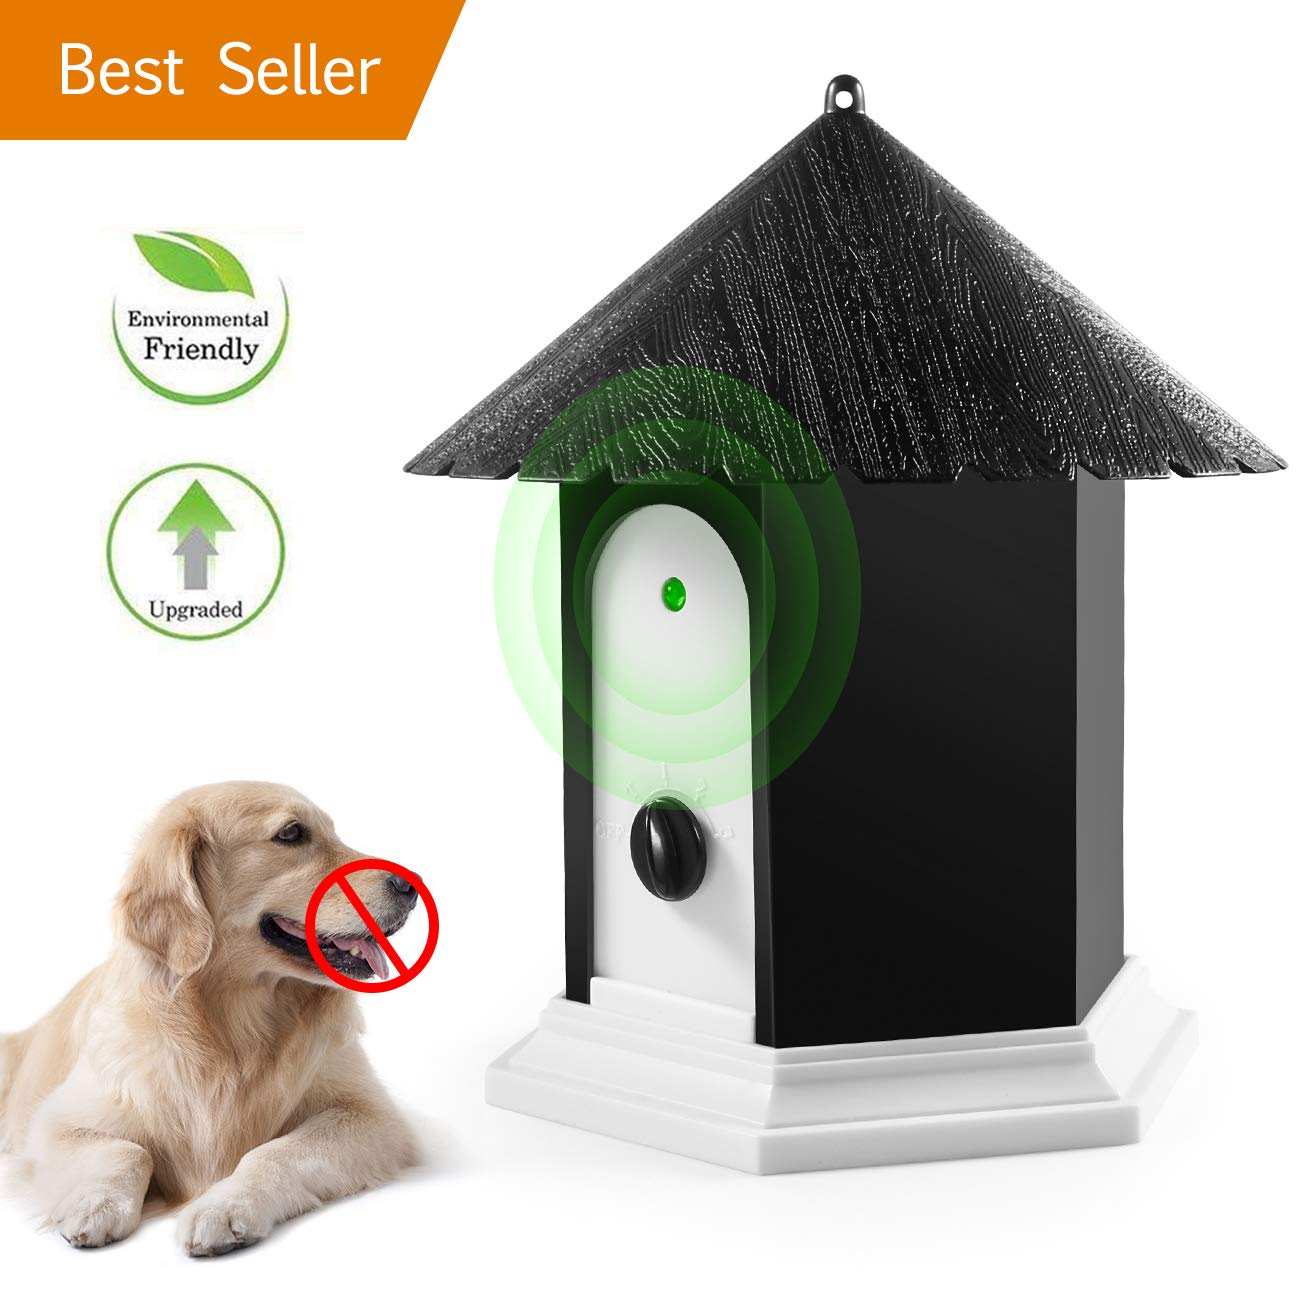 Anti Barking Device, 2018 New Bark Box Outdoor Dog Repellent Device with Adjustable Ultrasonic Level Control Safe for Small Medium Large Dogs, Sonic Bark Deterrents, Bark Control Device